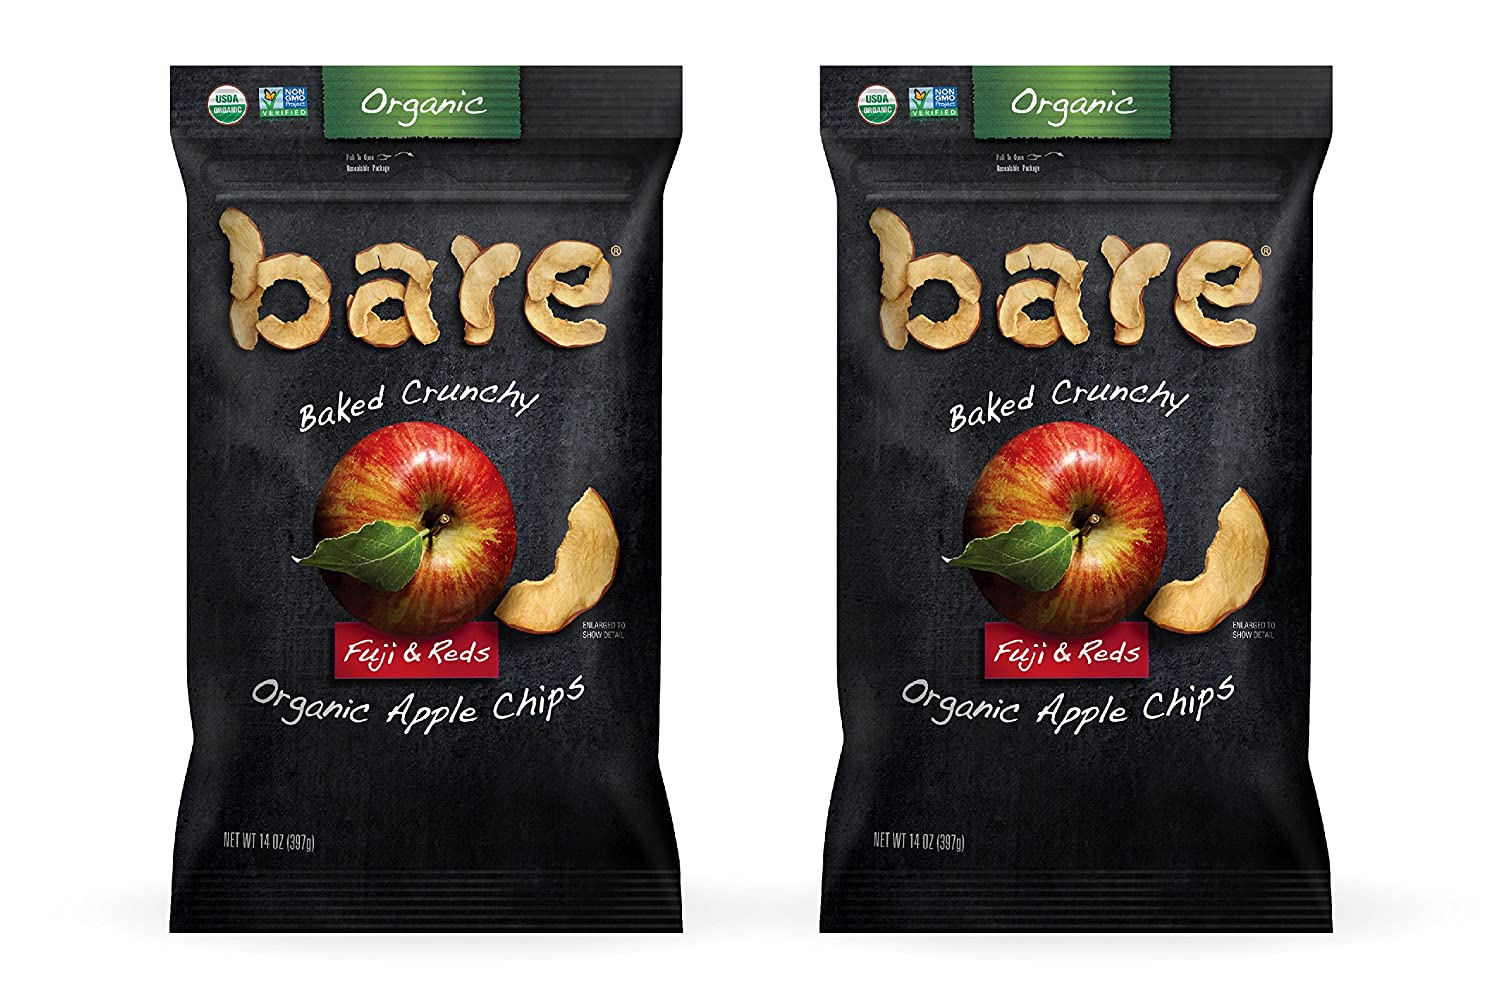 Bare Baked Crunchy Organic Apple Chips, Fuji & Reds, Gluten Free, 14 Ounce Bag, 2 Count